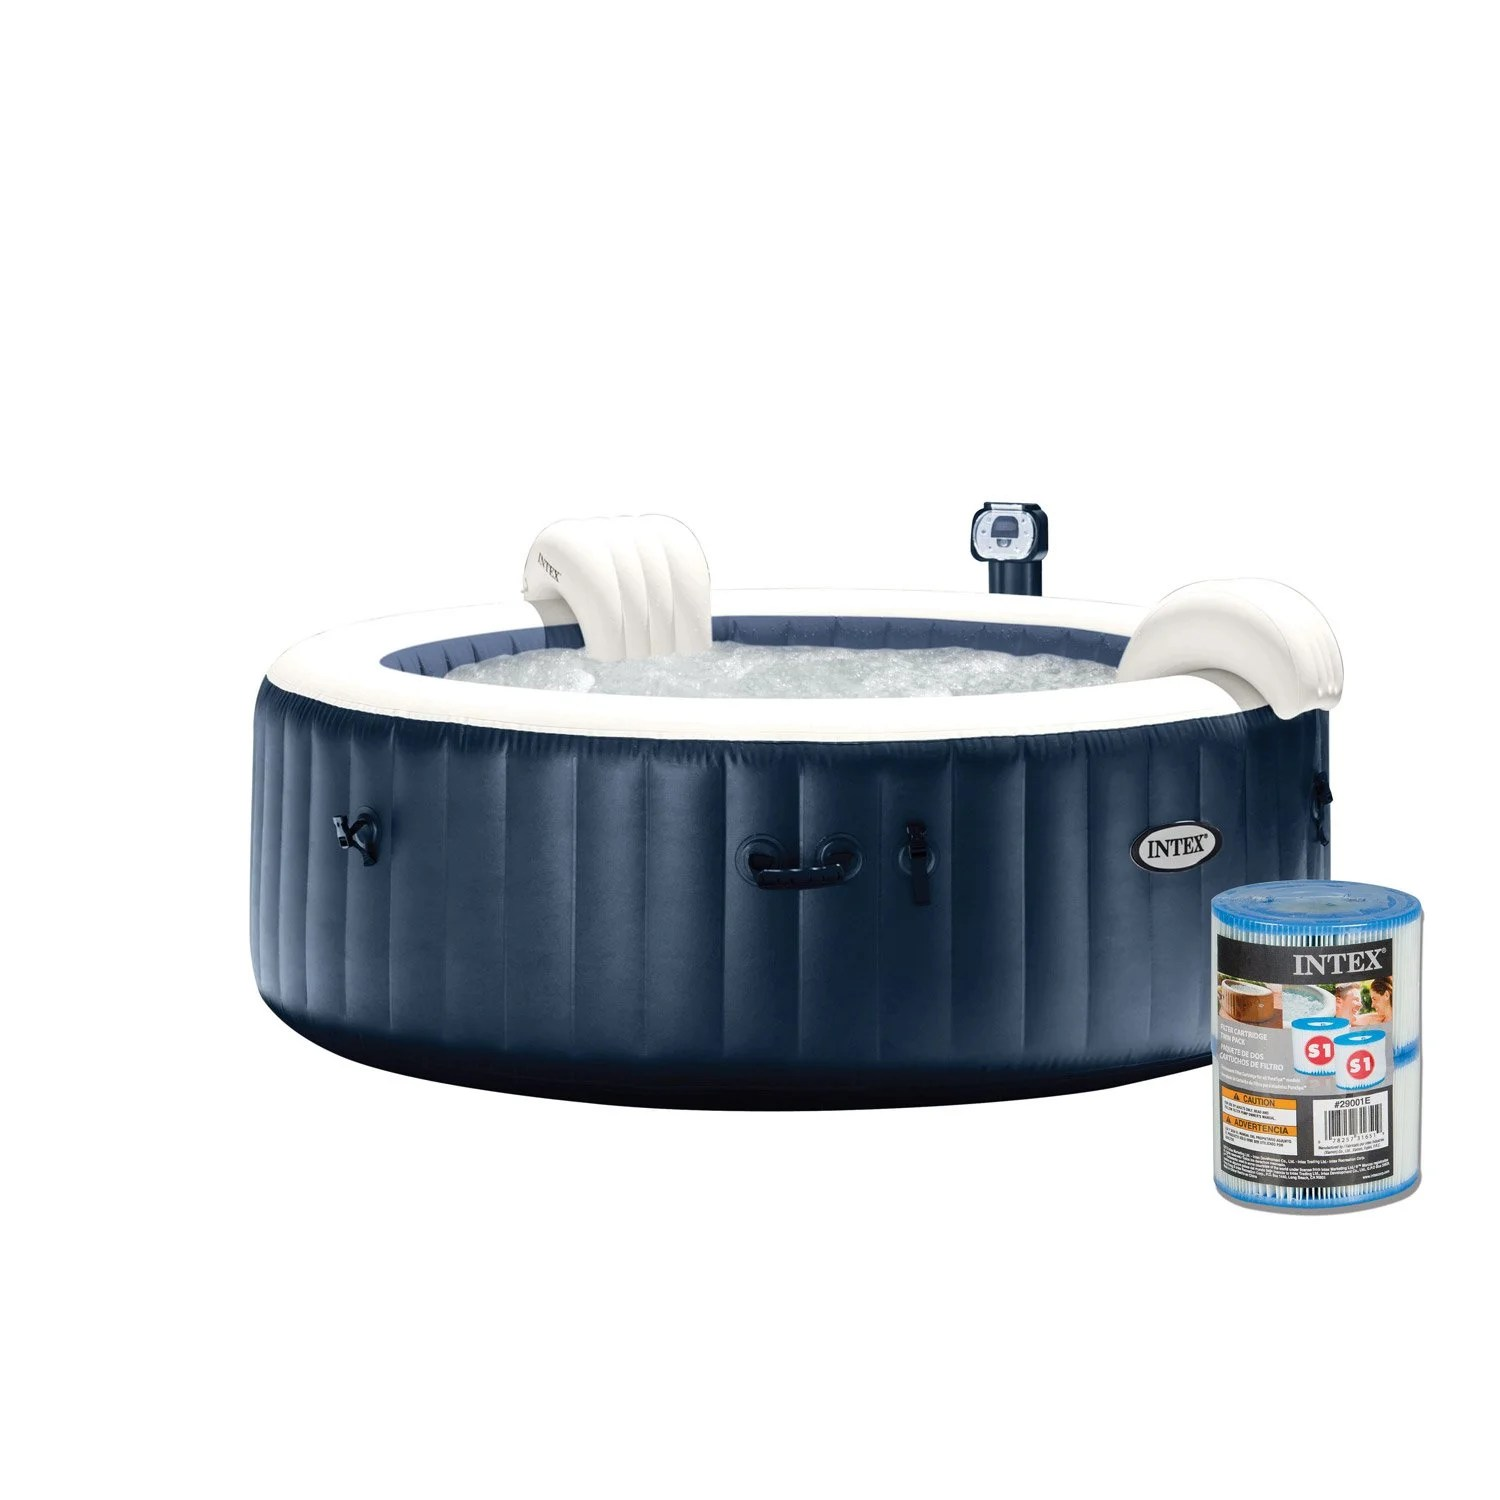 Spa Jacuzzi Exterieur Intex Habillage Spa Gonflable Intex Stunning Jacuzzi Exterieur